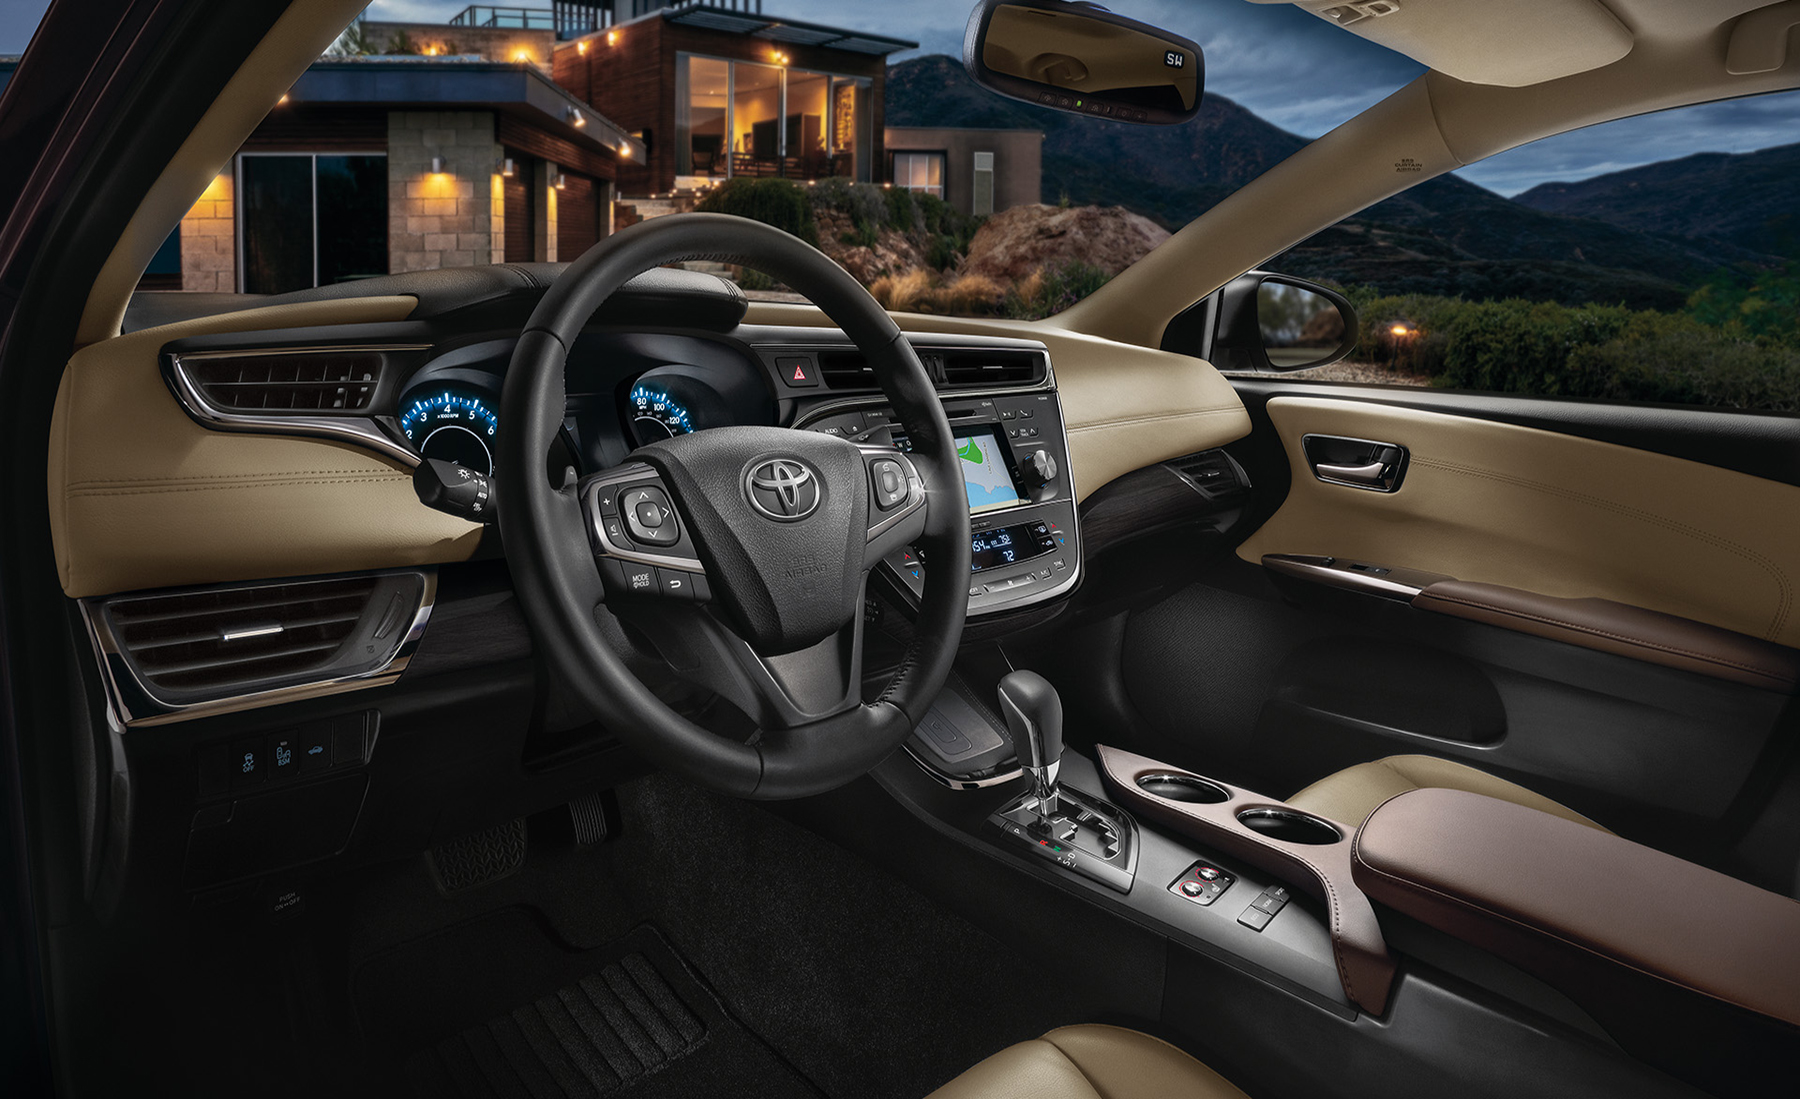 2016 Toyota Avalon Interior